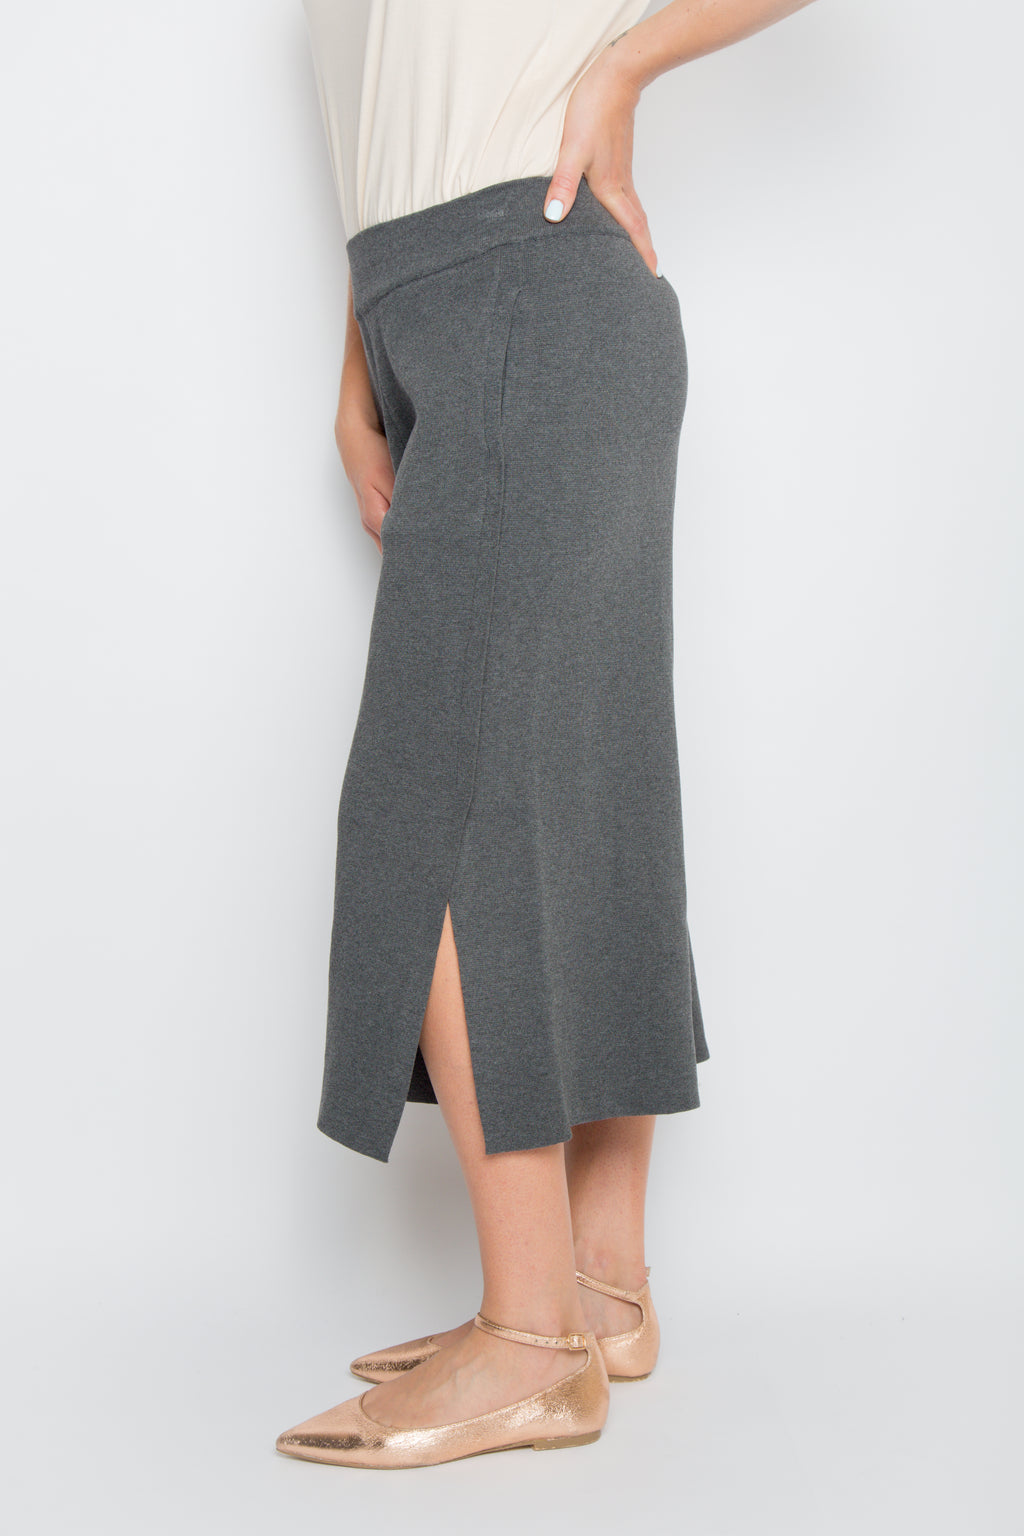 Classic Knit Culotte in Charcoal